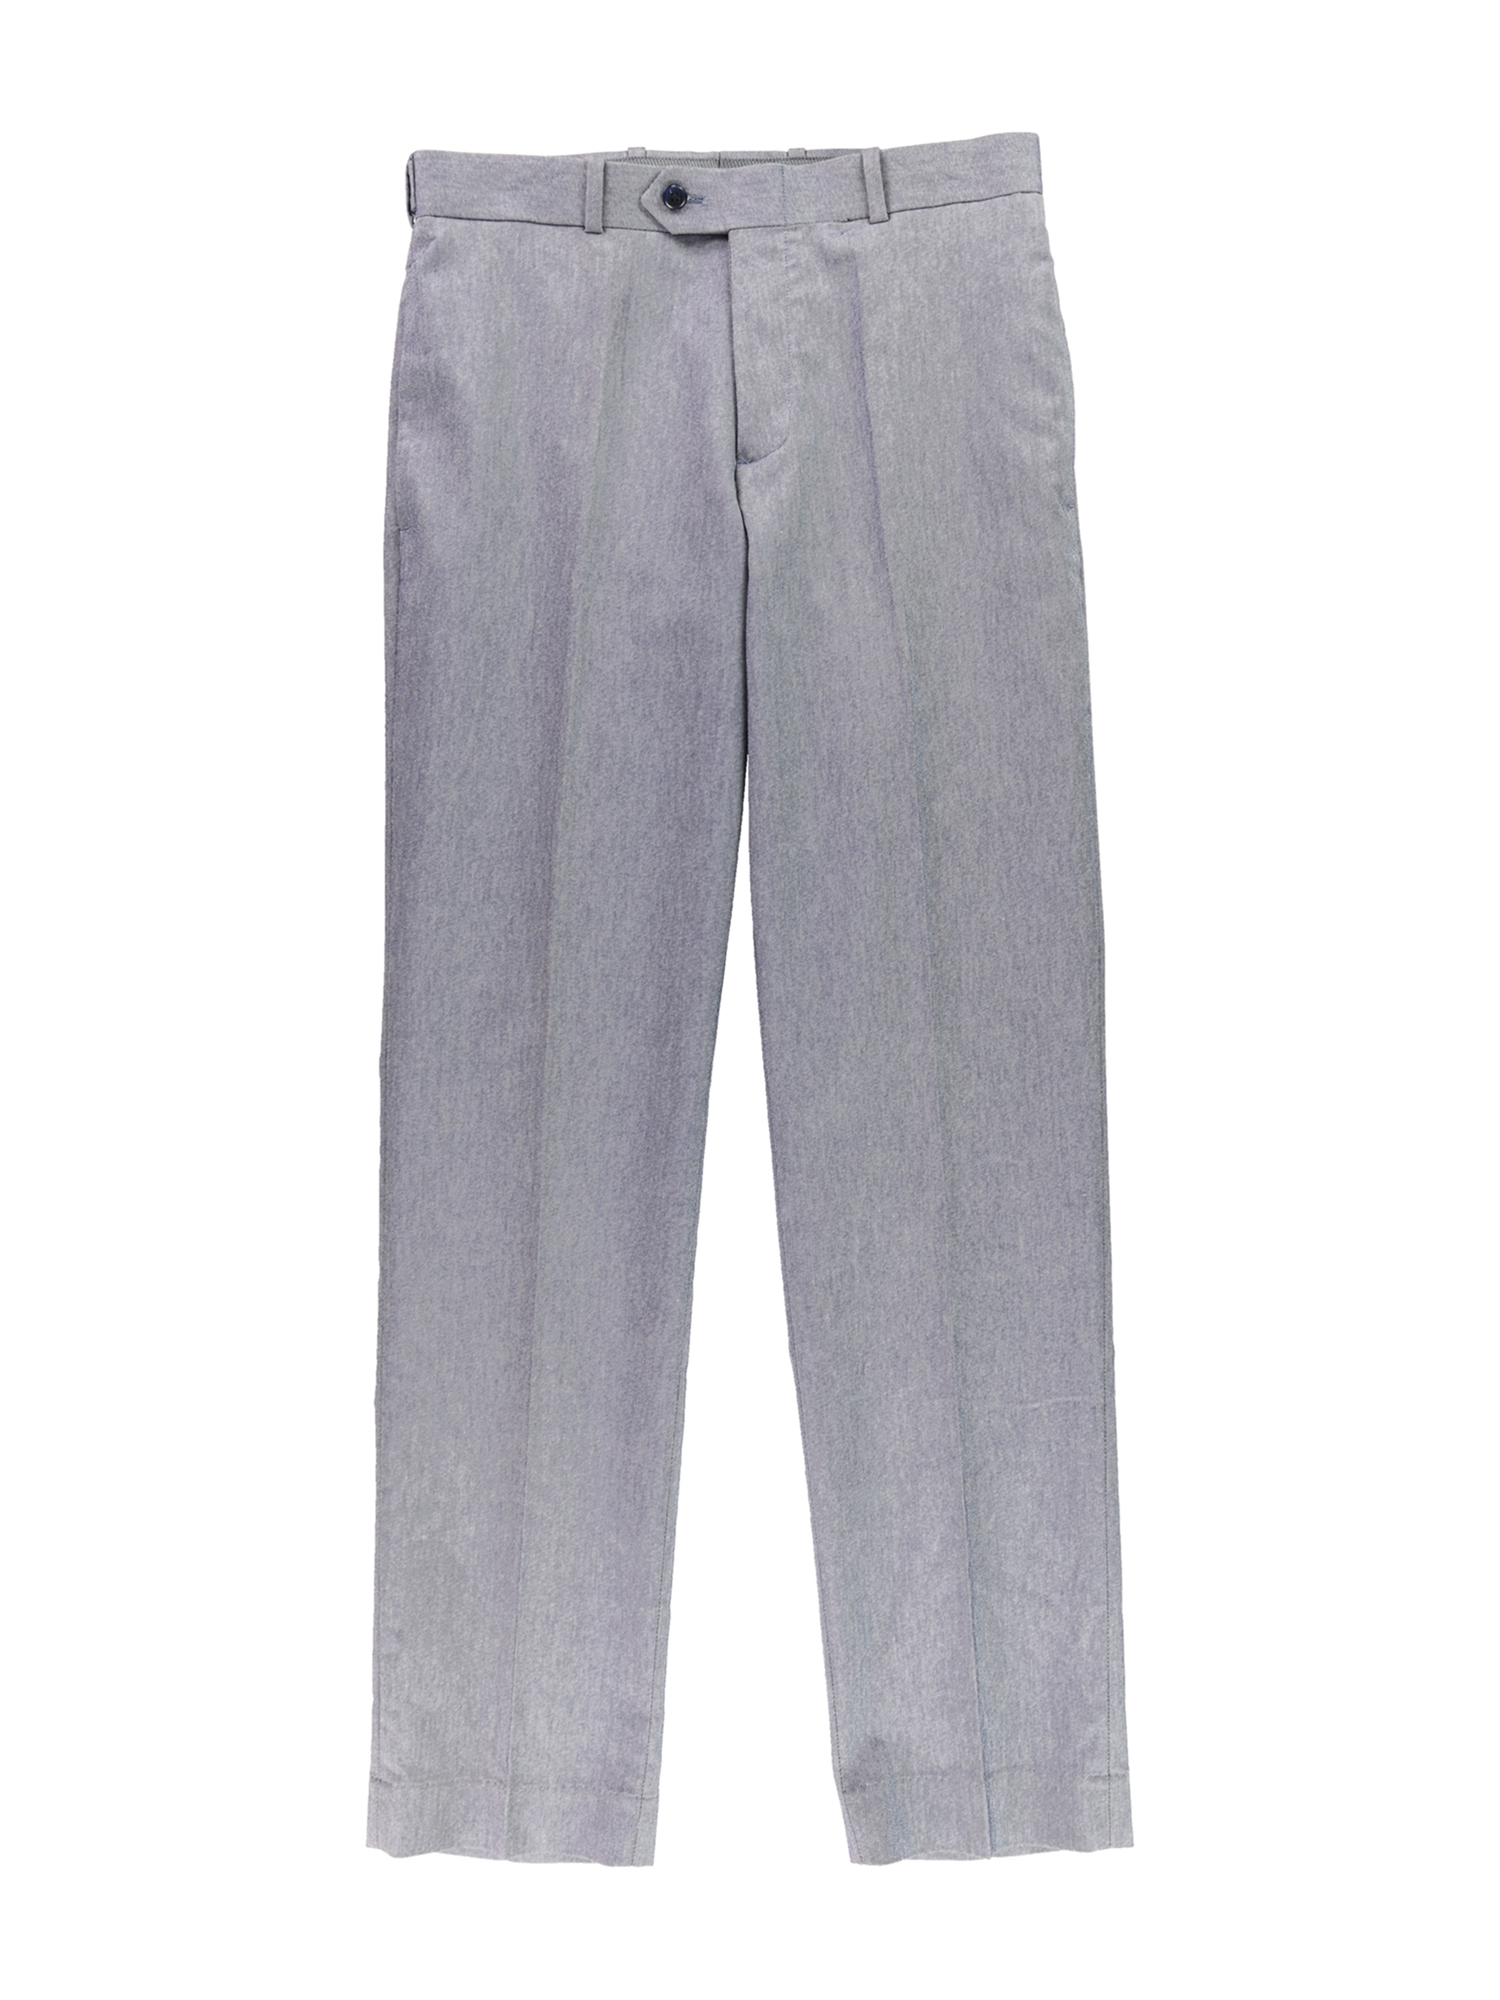 bar III Mens Heather Slim Fit Dress Slacks gray 30x32